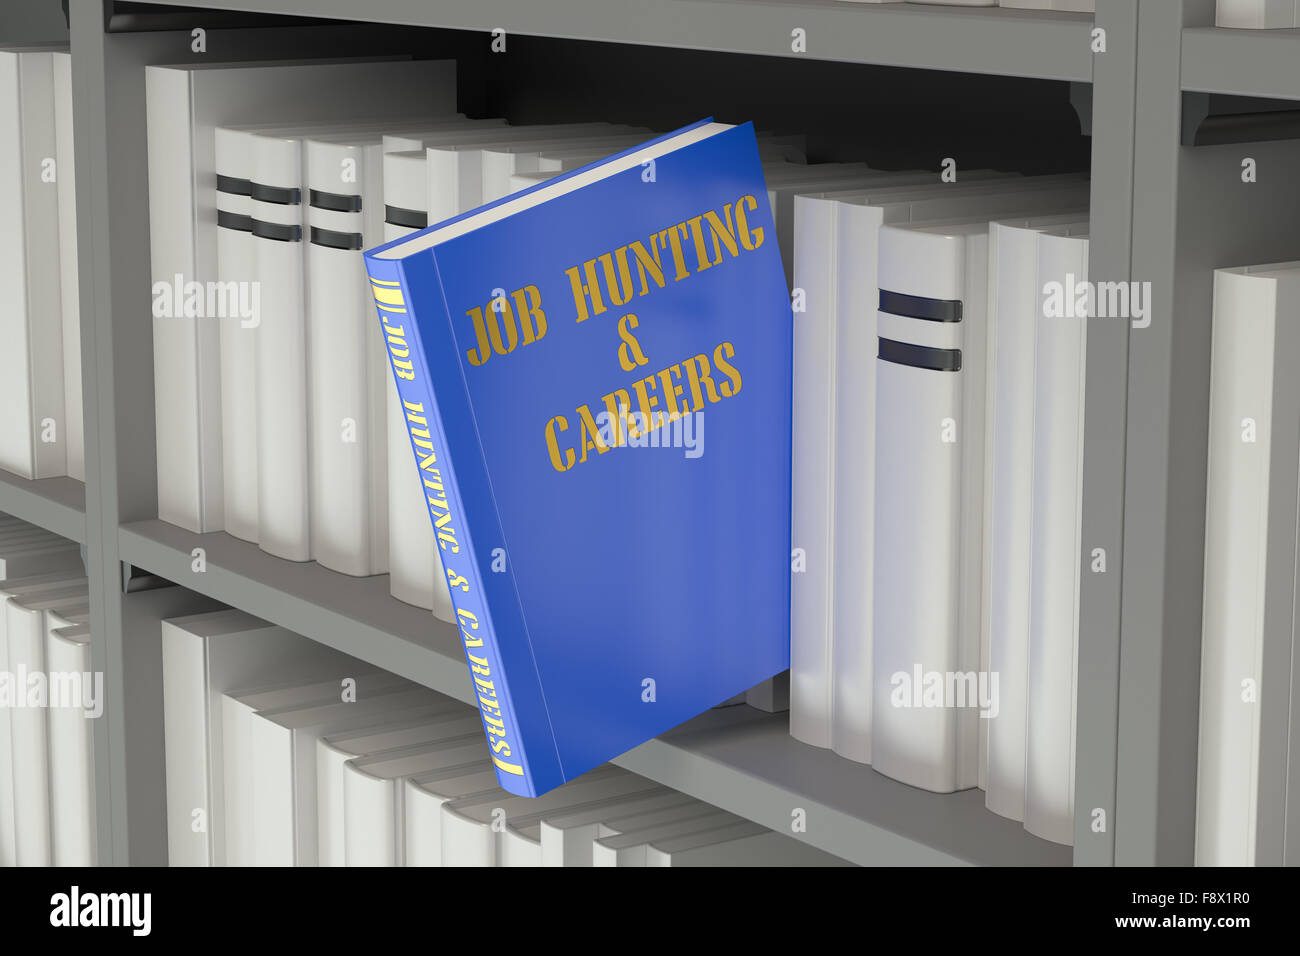 job hunting and careers concept on the bookshelf - Stock Image